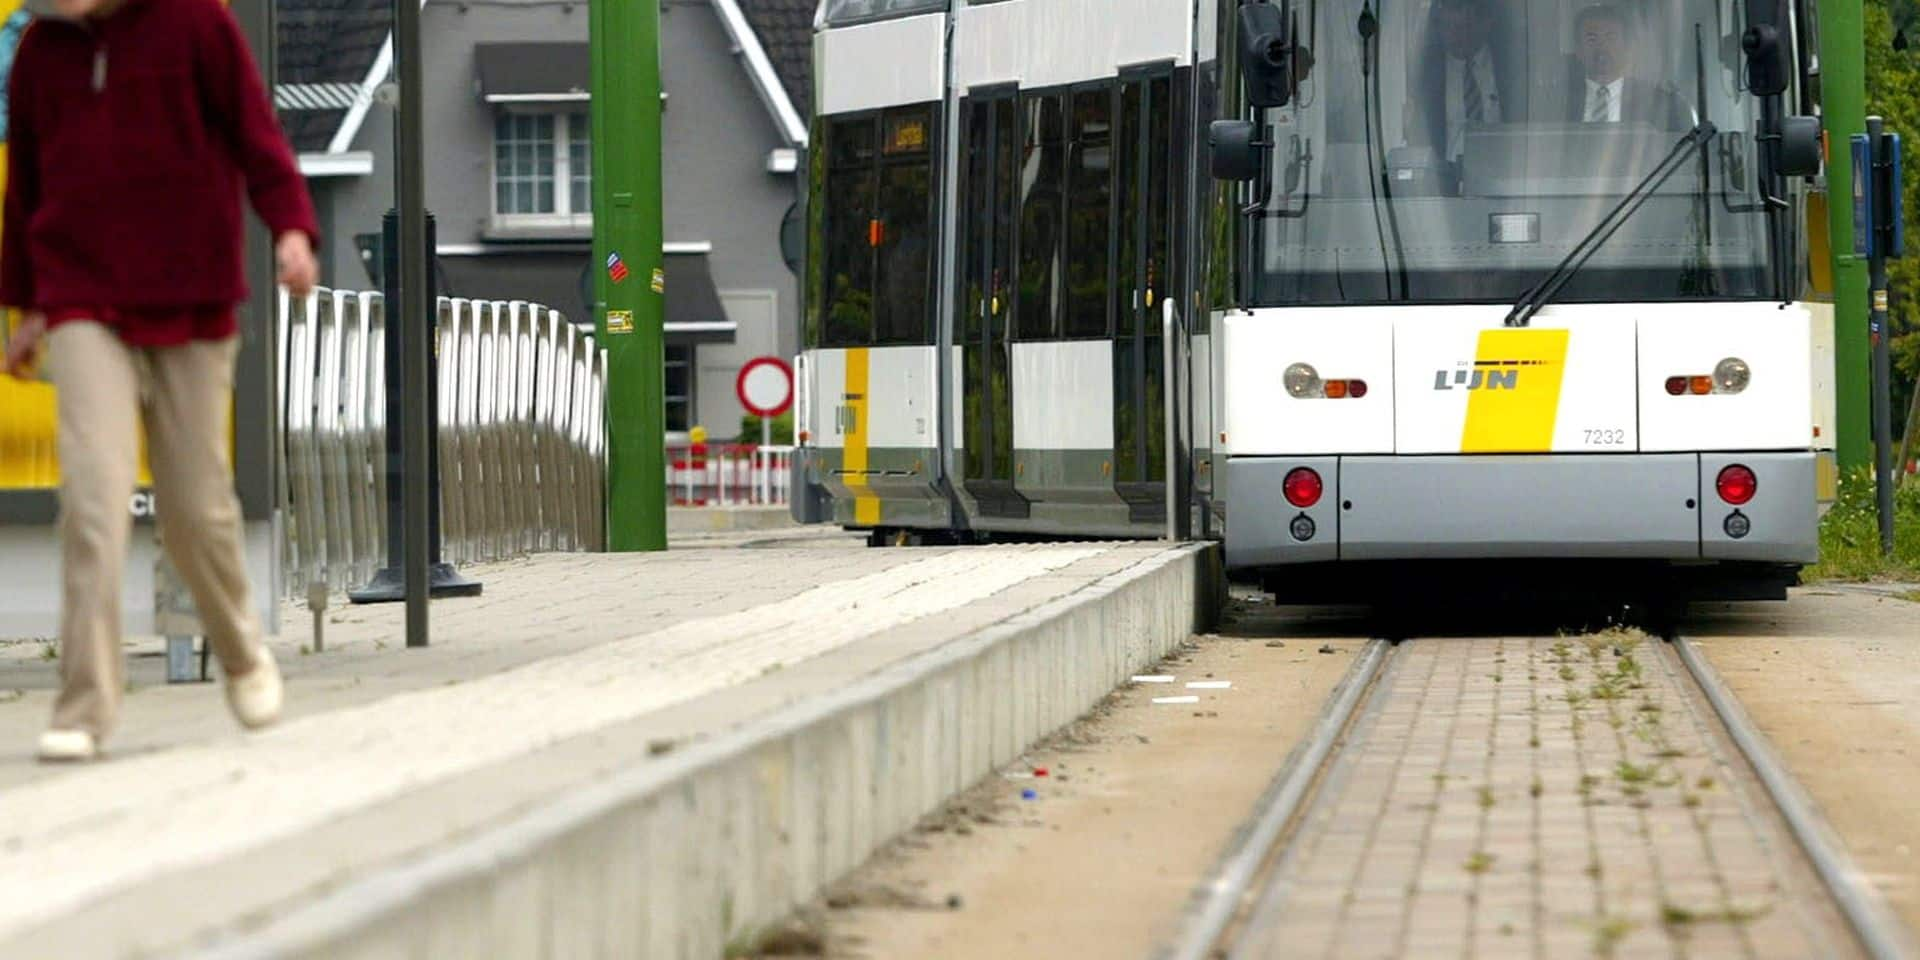 Six mineurs interpellés après l'agression d'un conducteur de tram